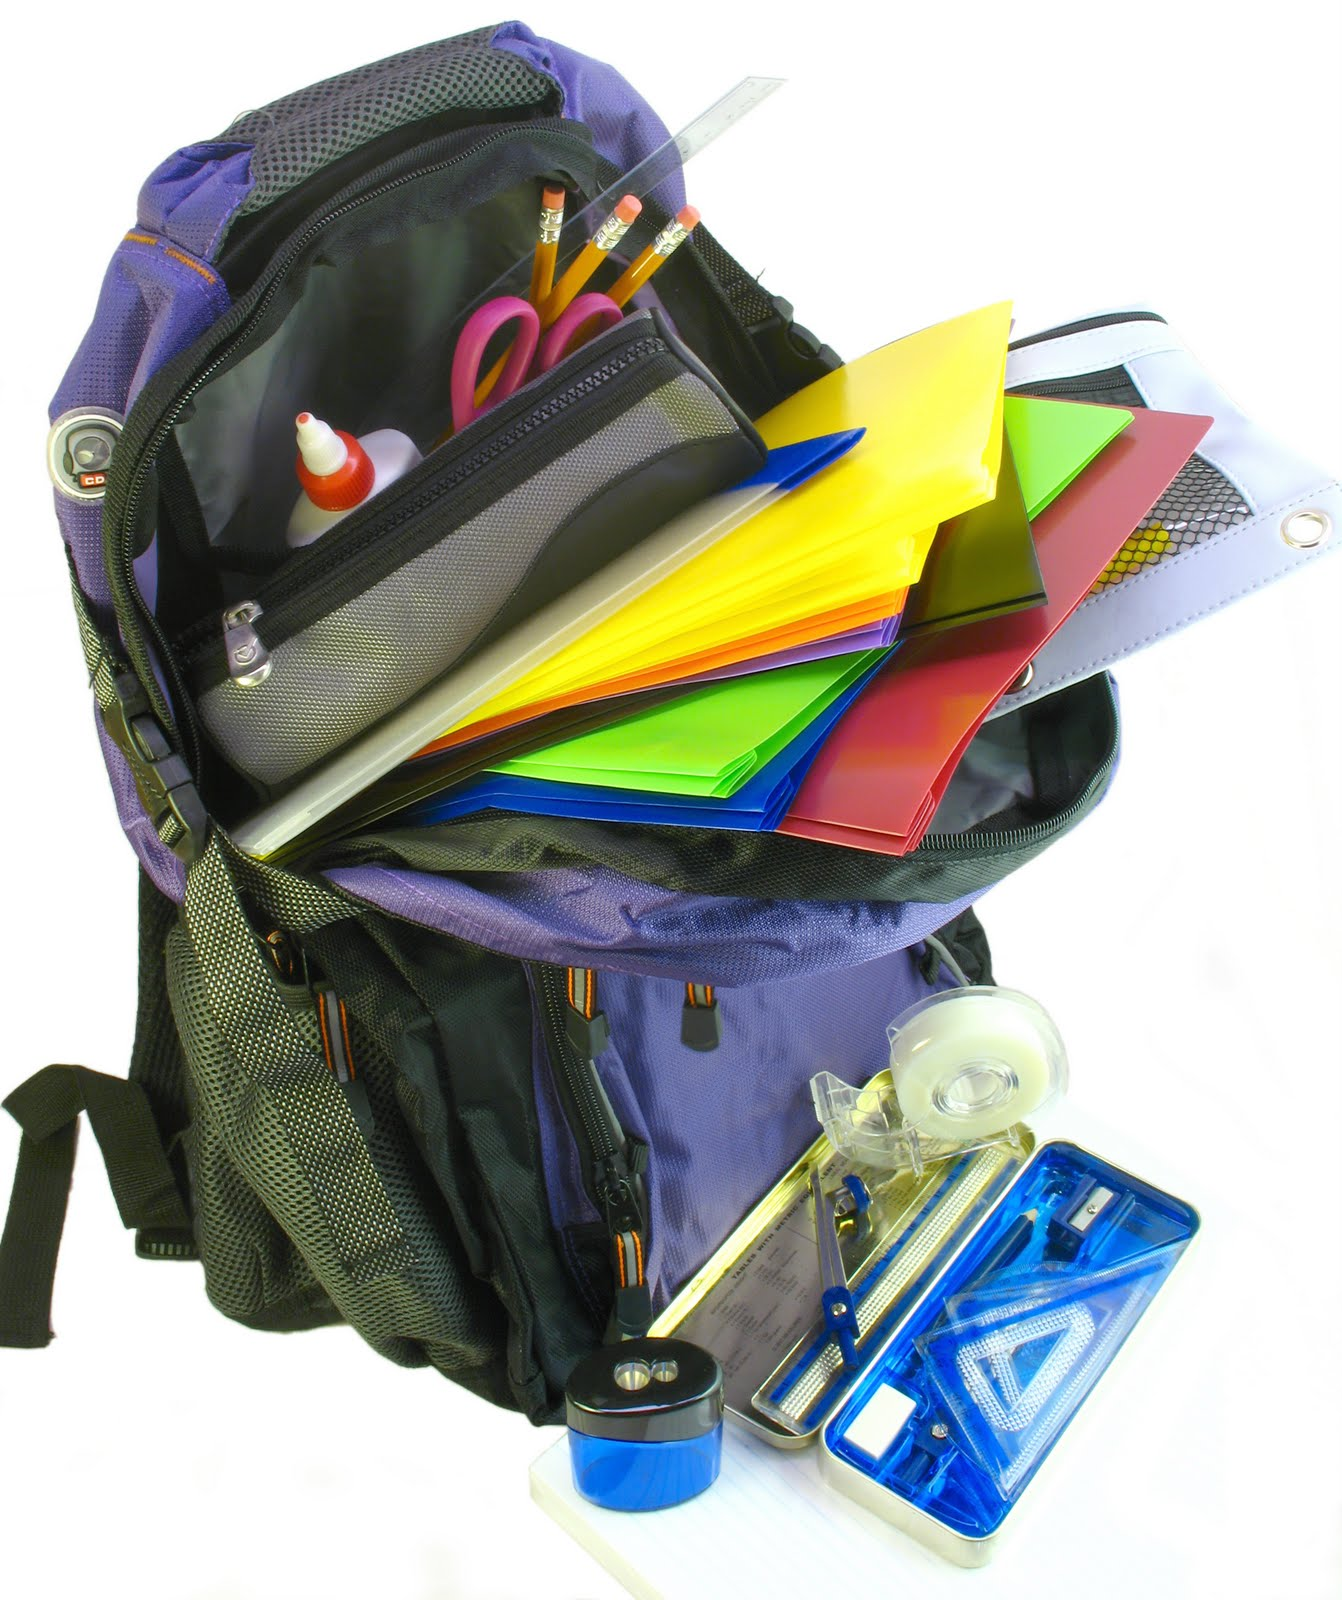 Backpacks For School D6LGA9r4